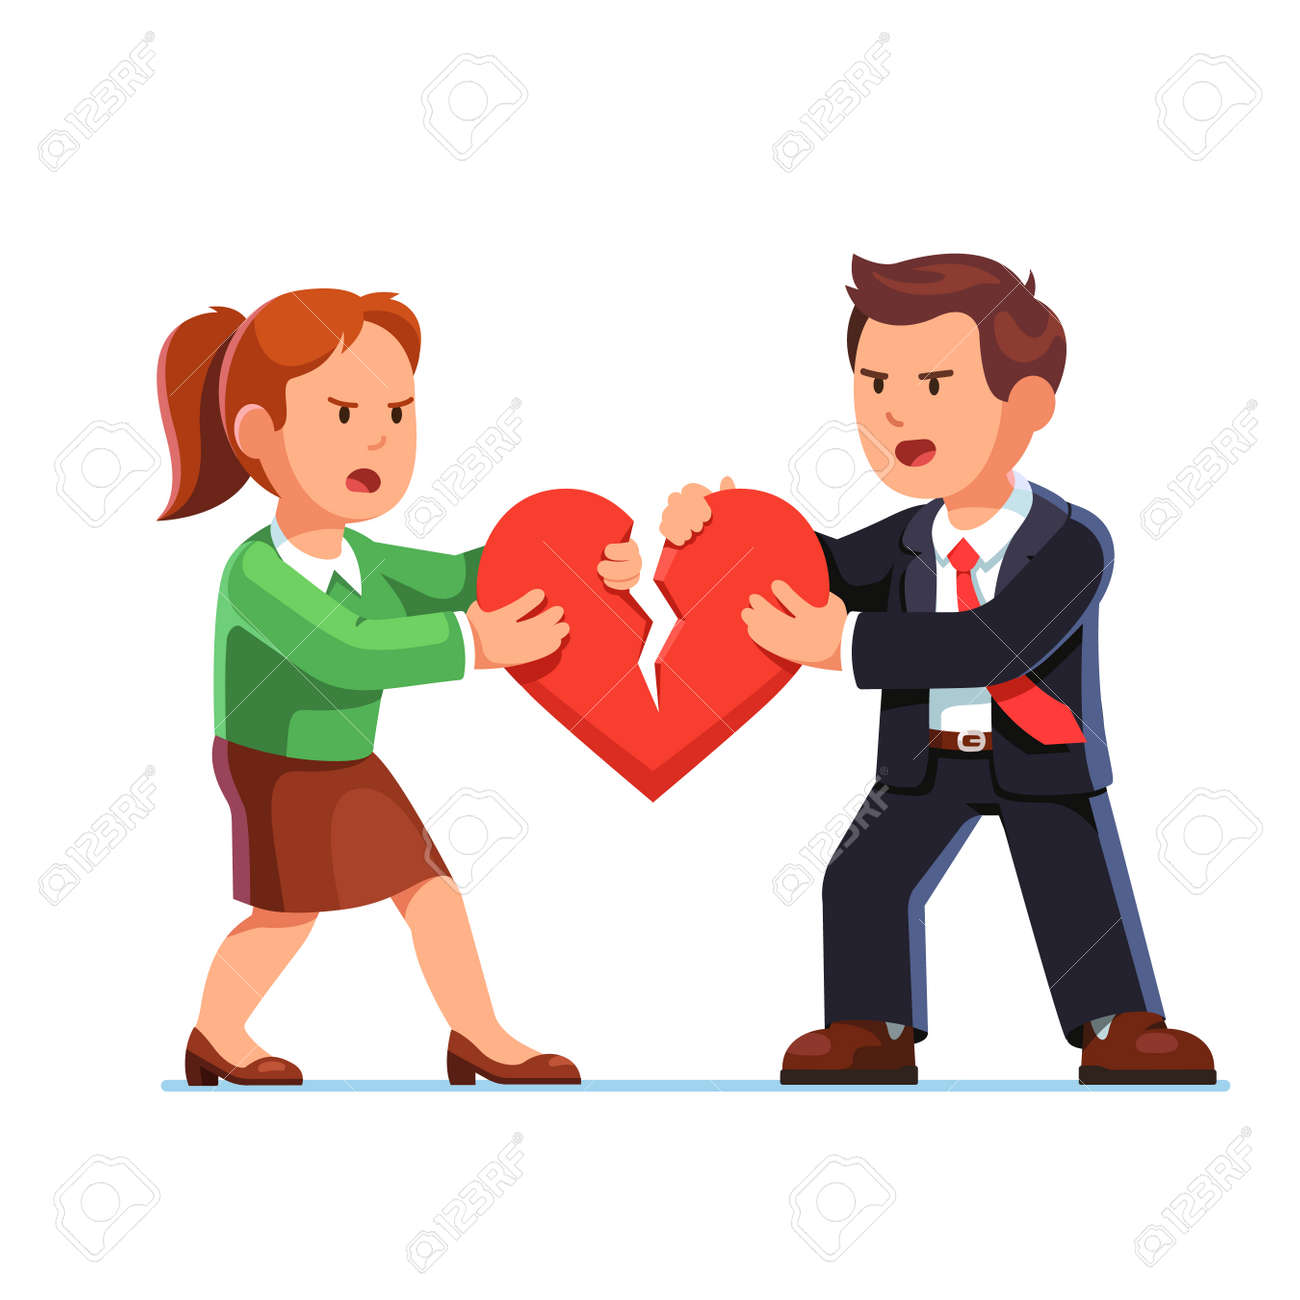 Man and woman tearing red heart in halves - 77357994